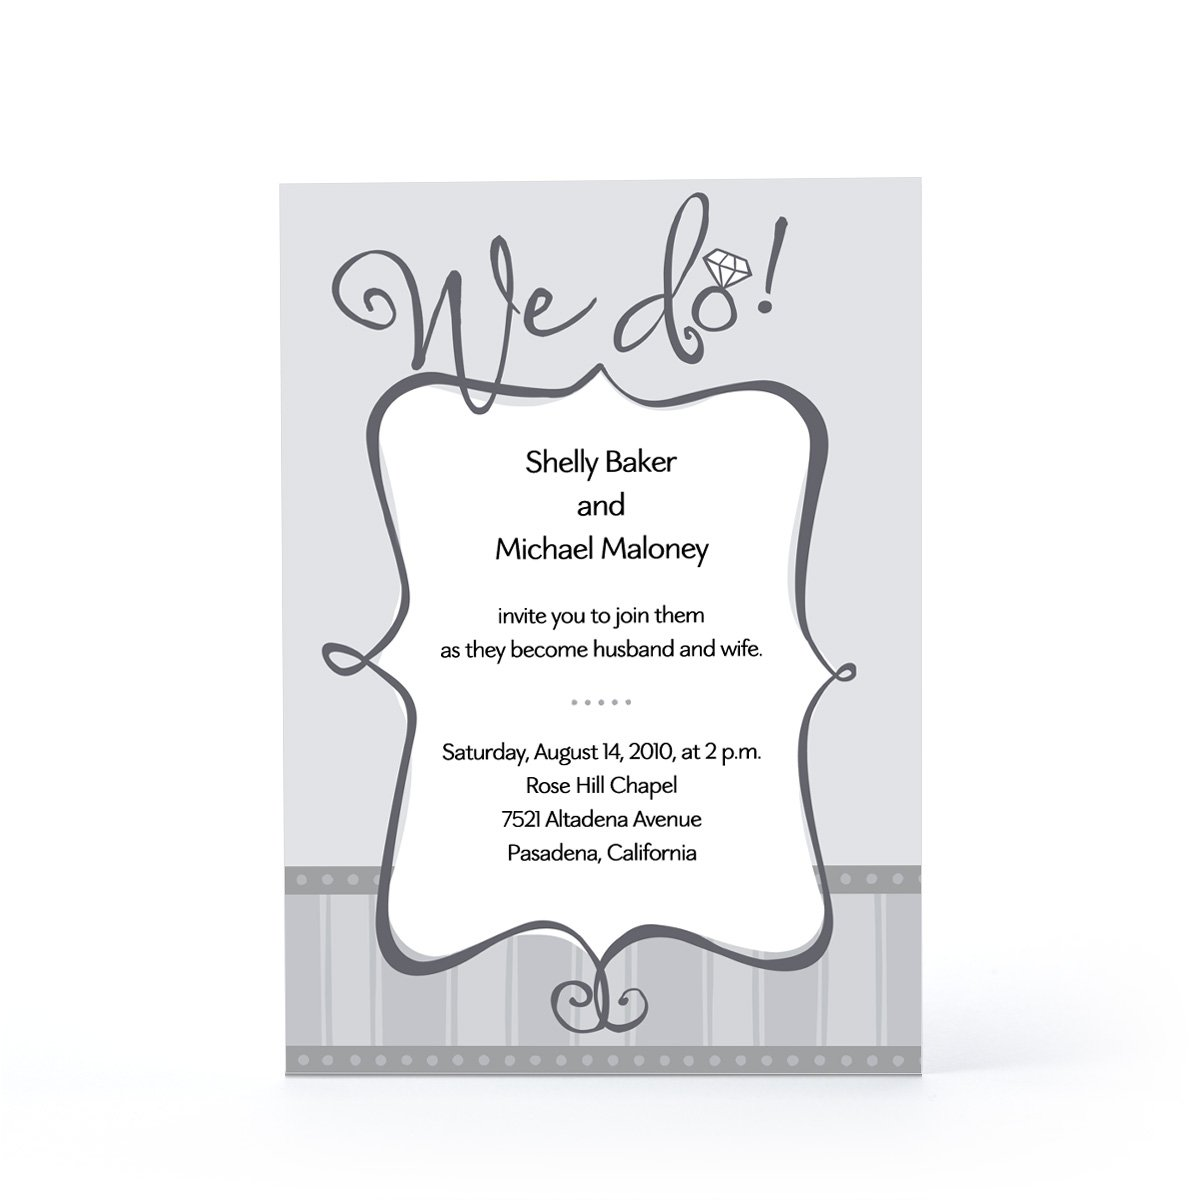 Hallmark Printable Wedding Invitations